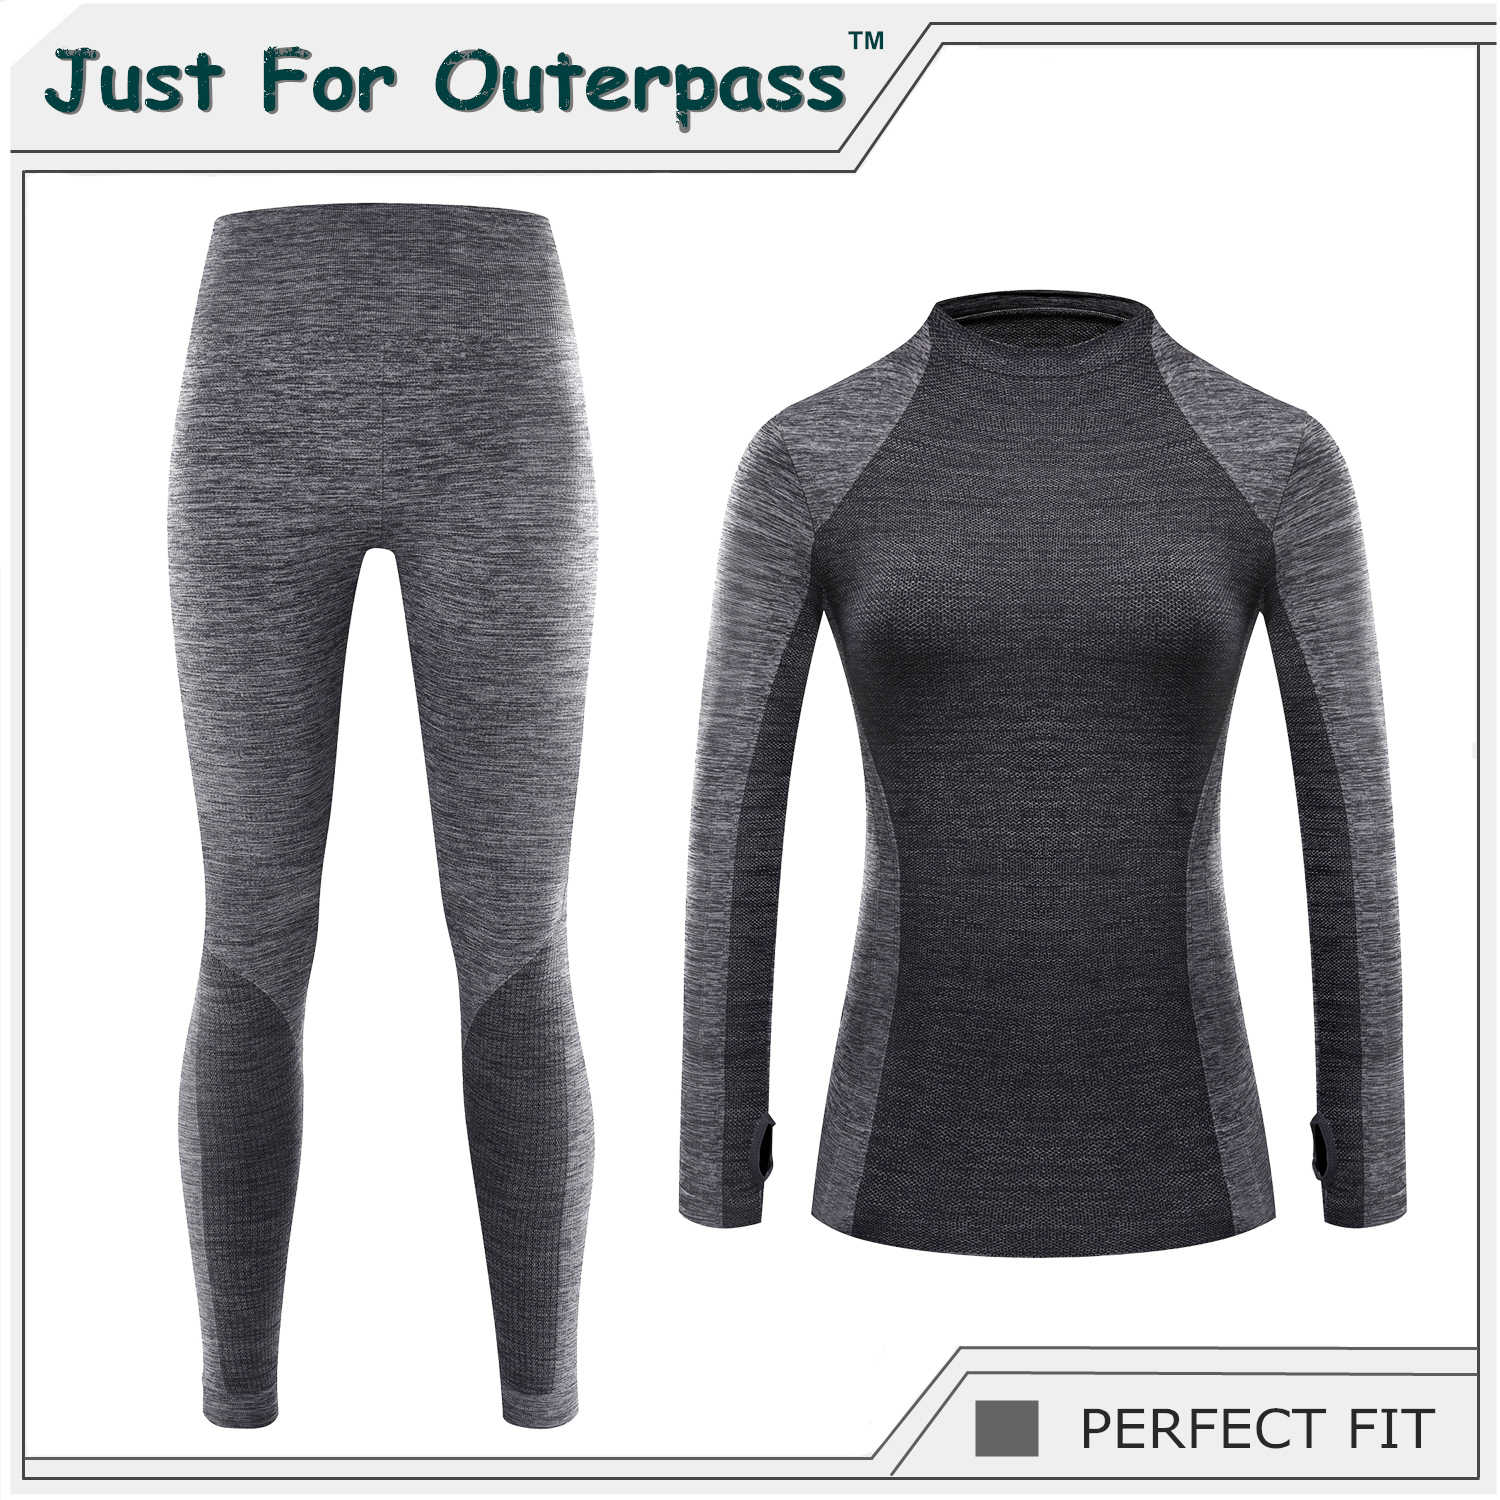 Just For Outerpass Brand 2019 New Winter Thermal Underwear Women Elastic Breathable Female HI-Q Casual Warm Long Johns Set